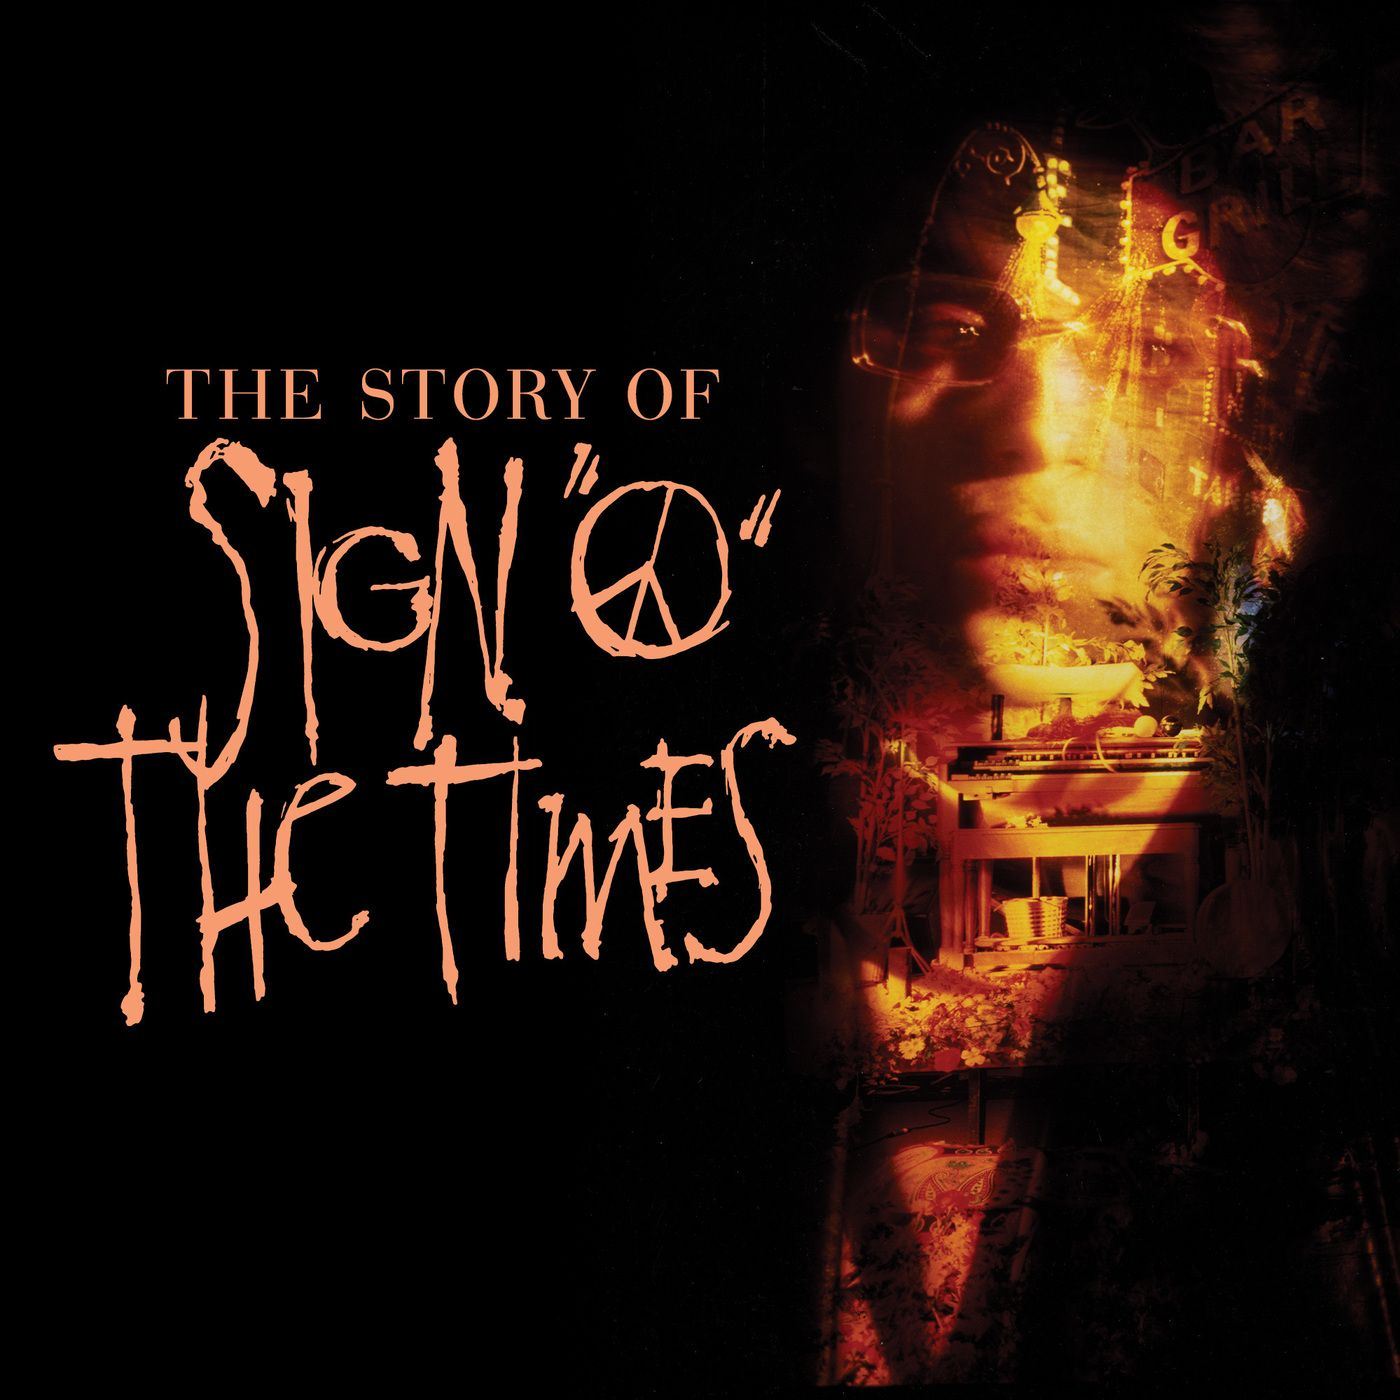 The Story of Sign O' The Times Episode 1: It's Gonna Be a Beautiful Night